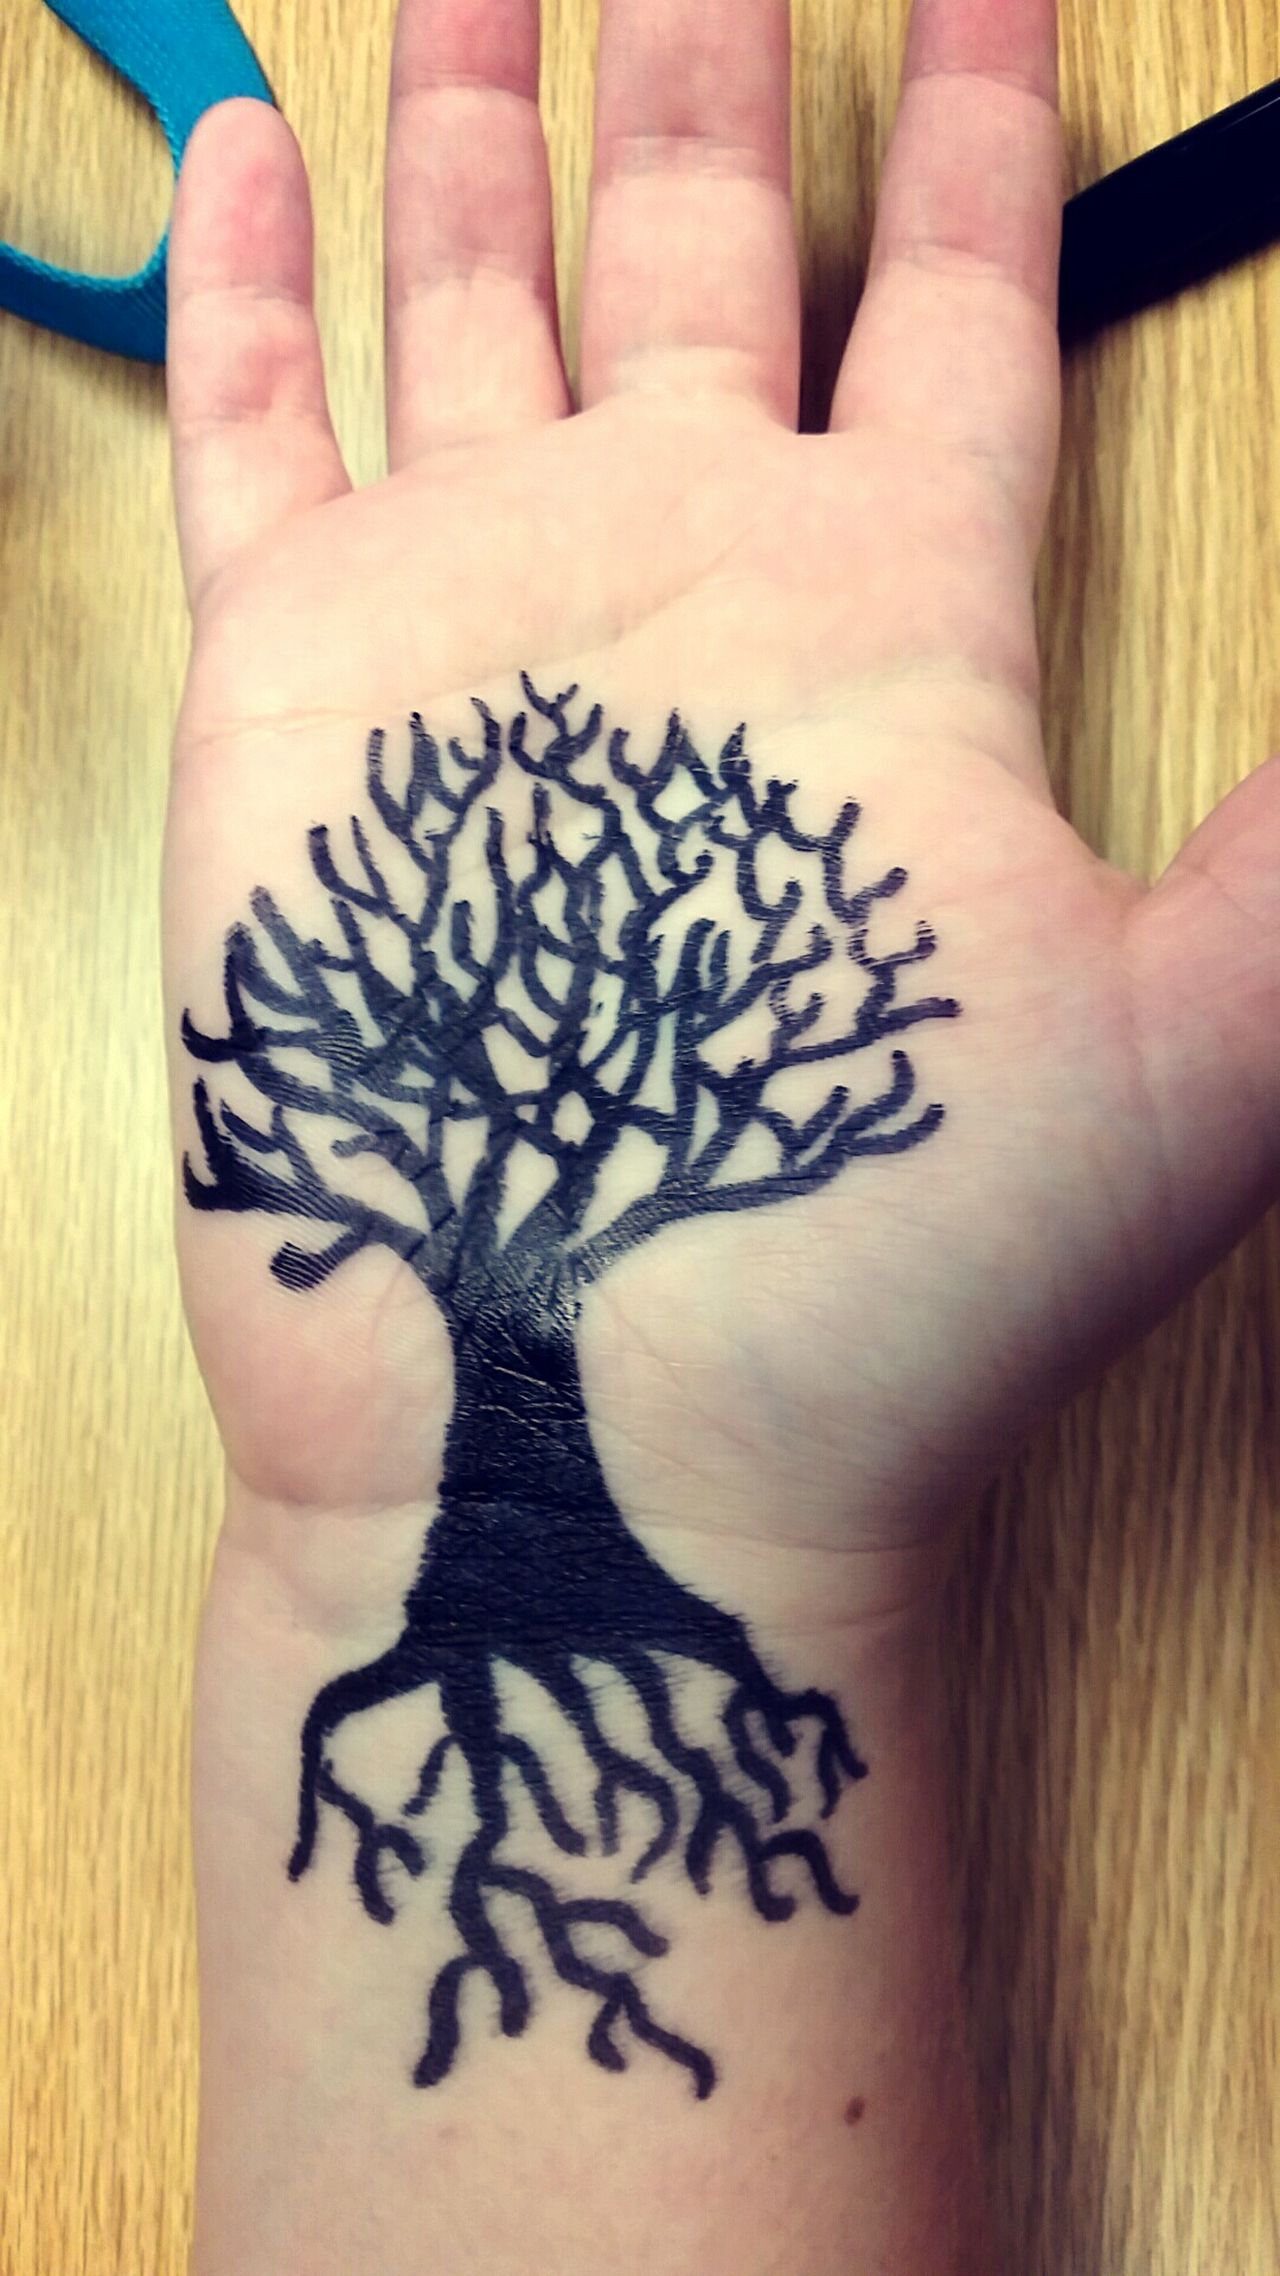 Human Hand Human Body Part Creativity One Person One Woman Only Real People Tree Plant Artistic Artist Art Artsy Artphoto Art Photography ArtInMyLife Artistic Expression Arts